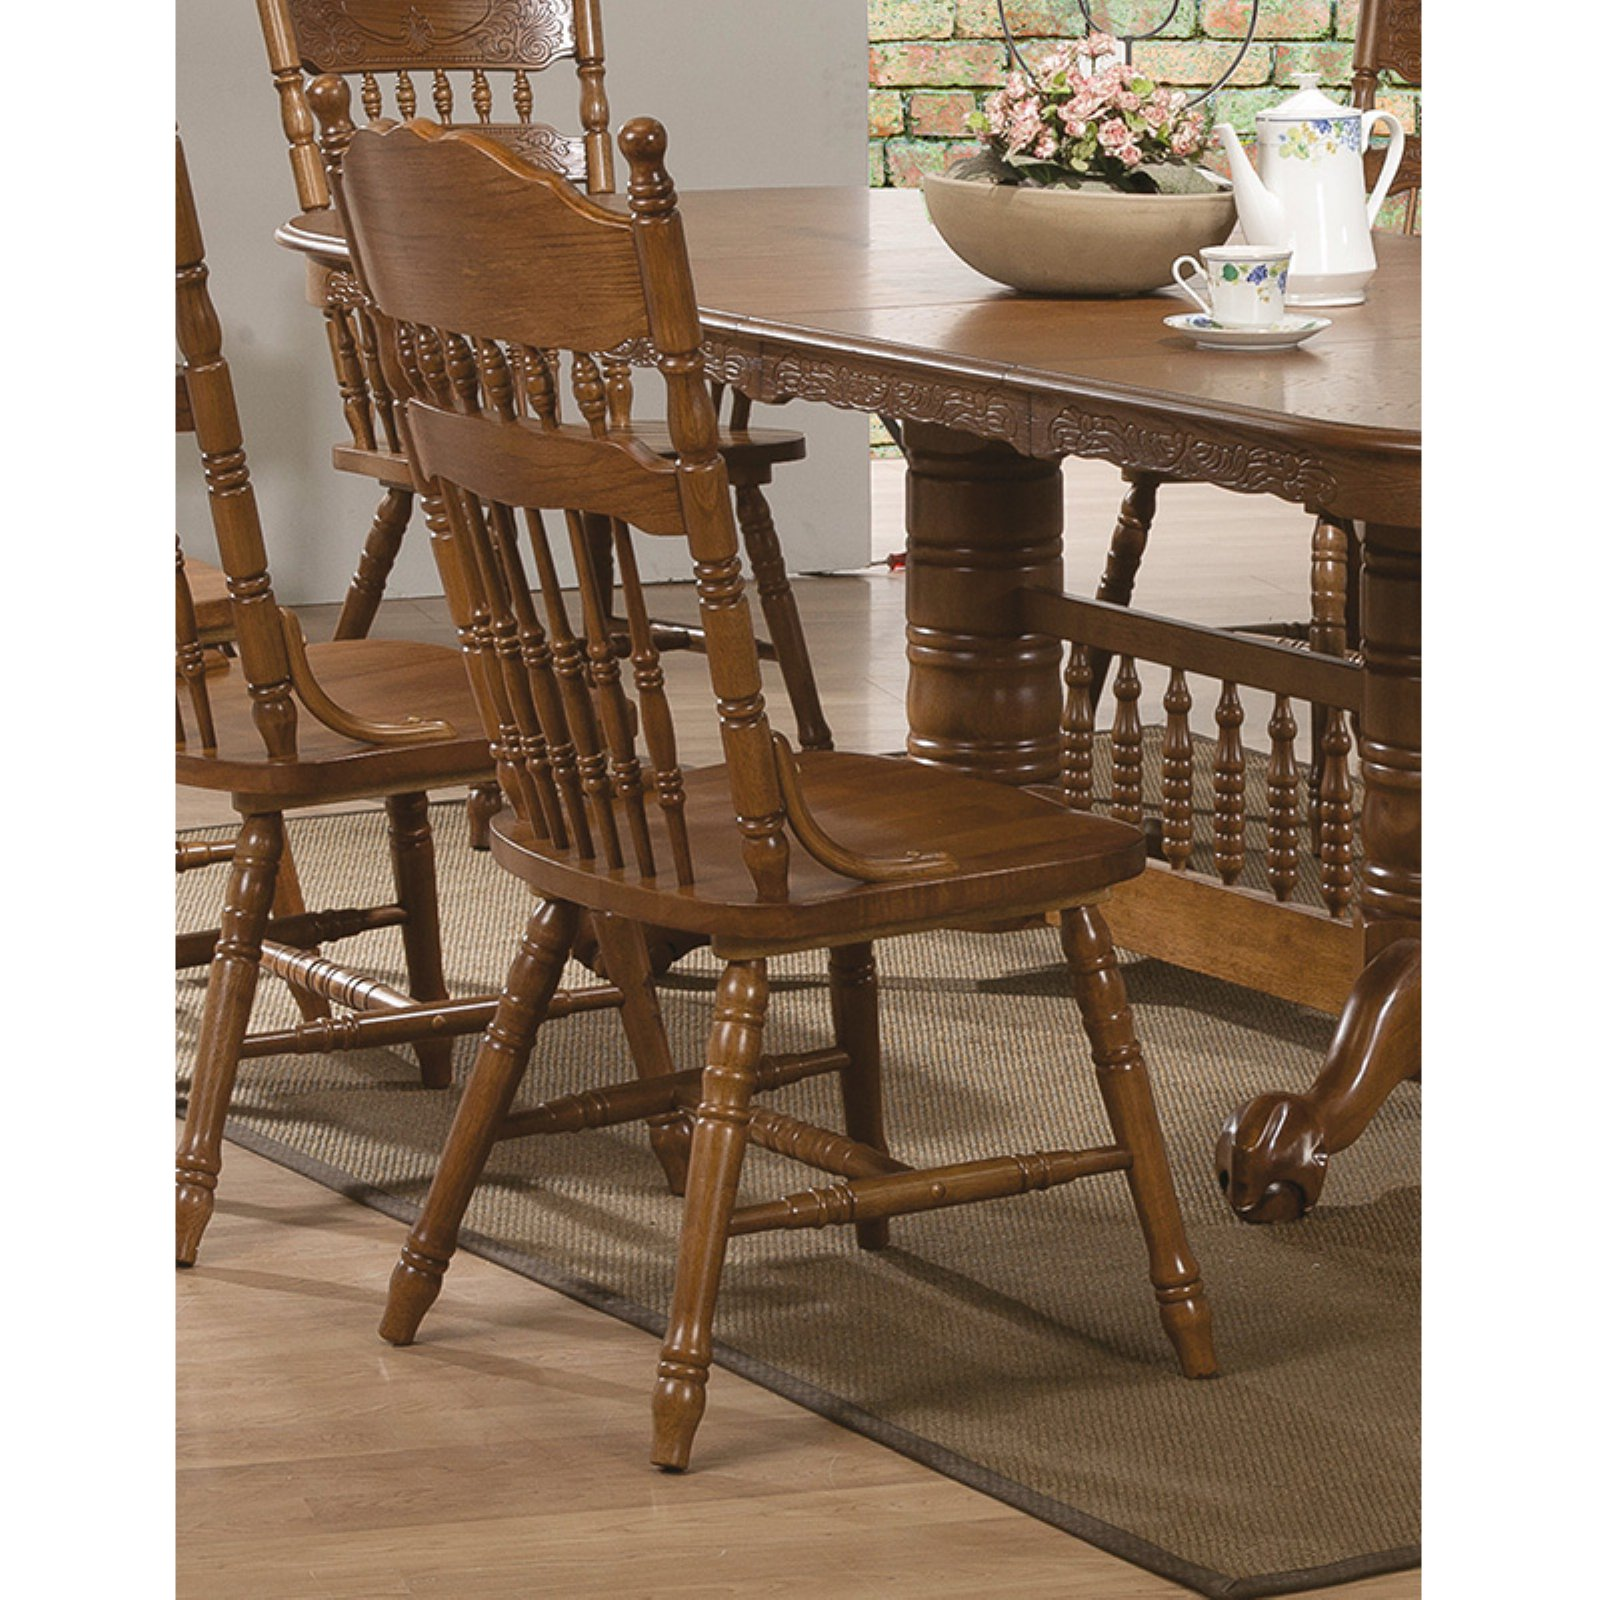 Coaster Furniture Brooks Country Side Chair - Set of 2